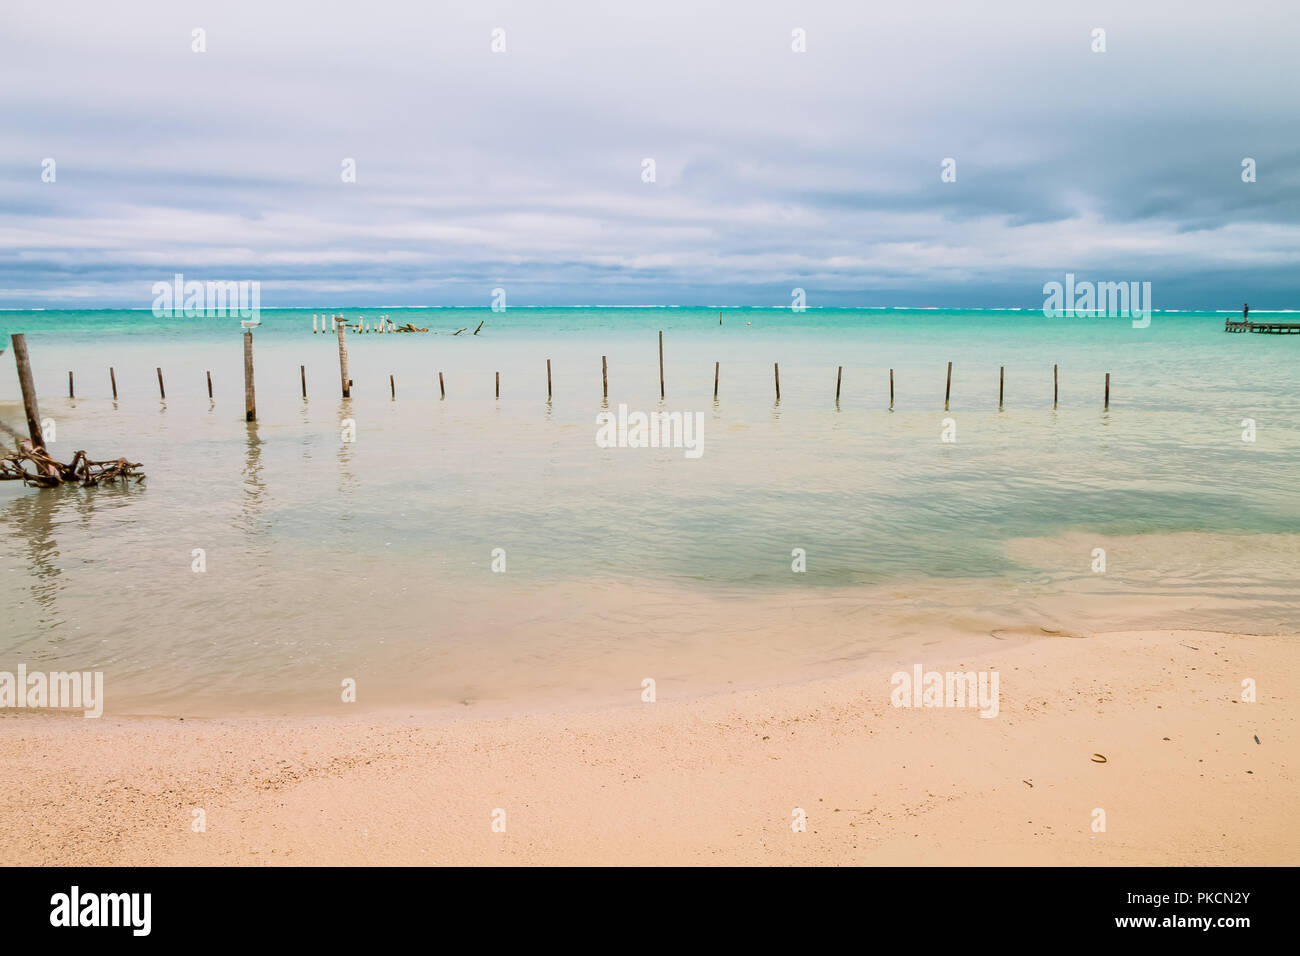 Man Looking at the Horizon in front of an Overcast Caribbean Sea - Stock Image